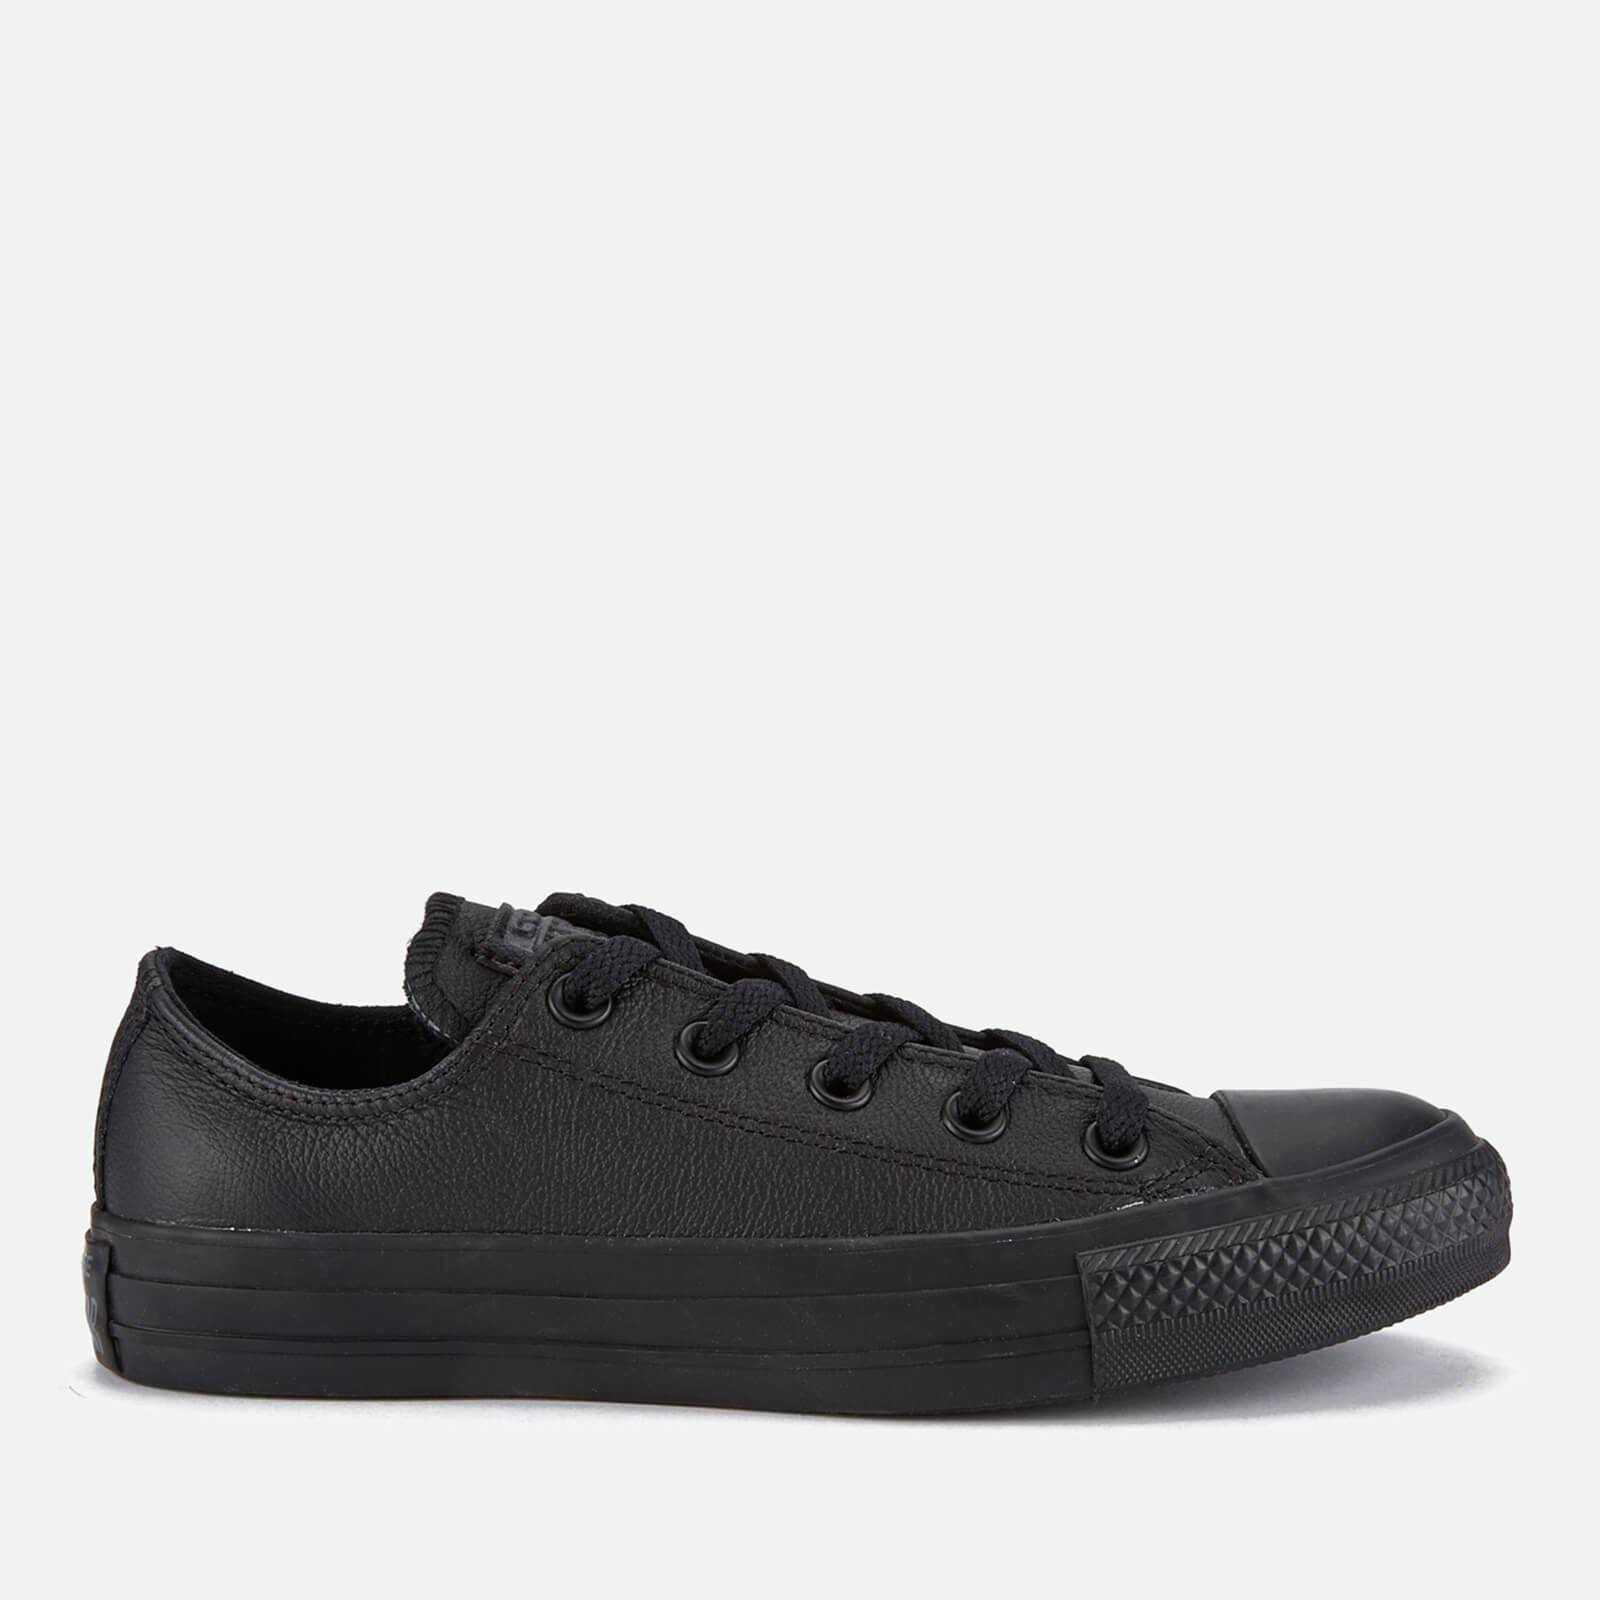 Converse Chuck Taylor All Star Ox Trainers - Black Mono - UK 10